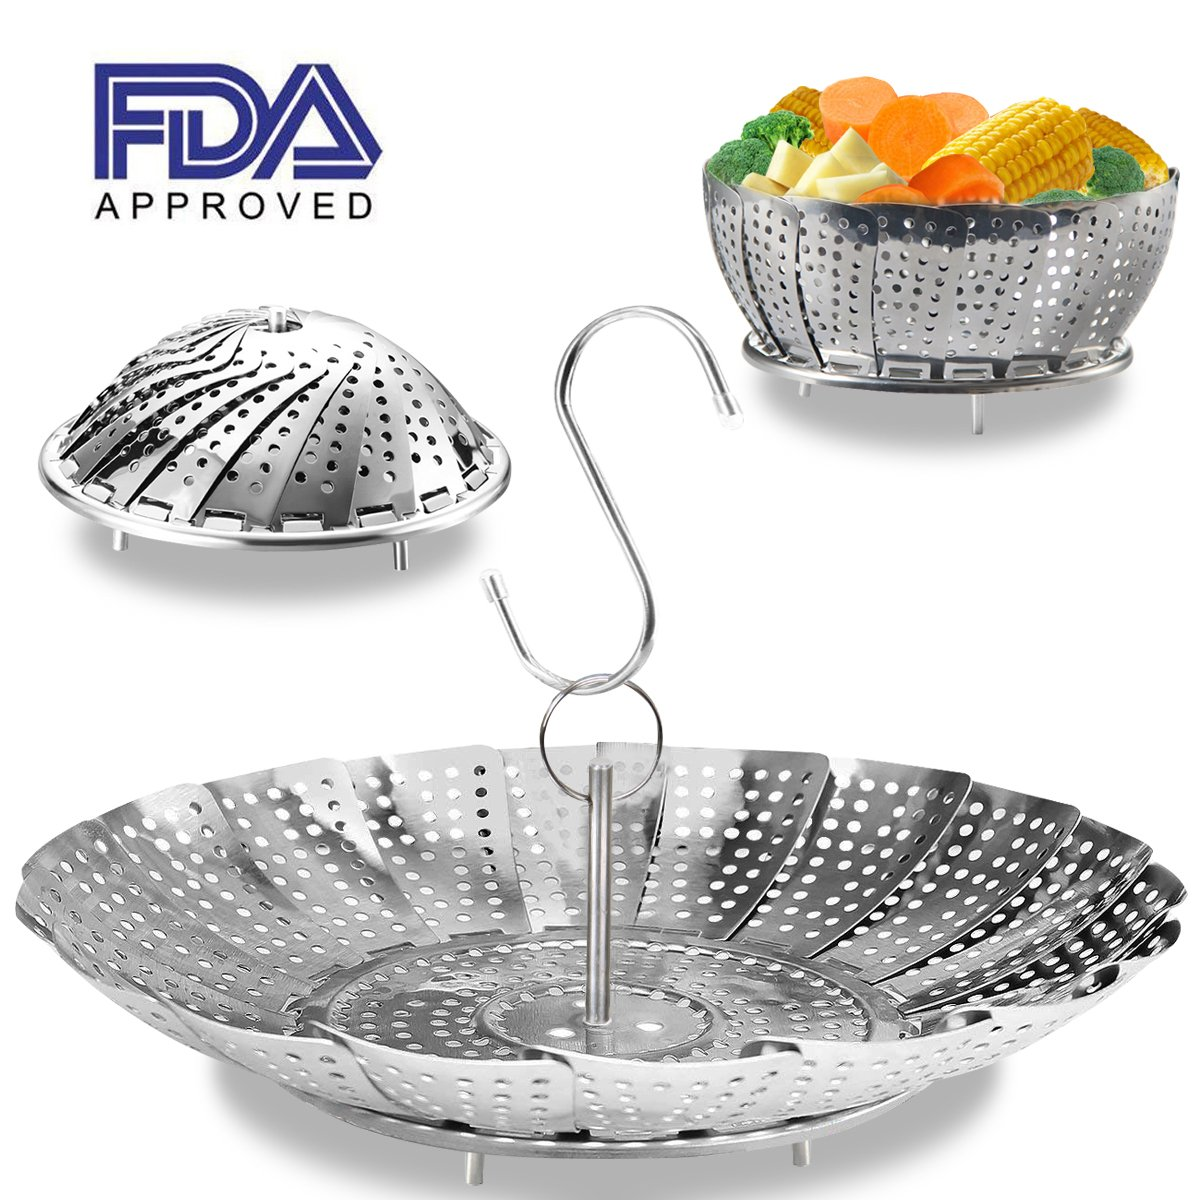 Steamer Basket - 100% Stainless Steel Vegetable Steamer Basket for Instant Pot Accessories, Steam food with Folding Steamer Basket, Expandable for Fit Various Size Pot